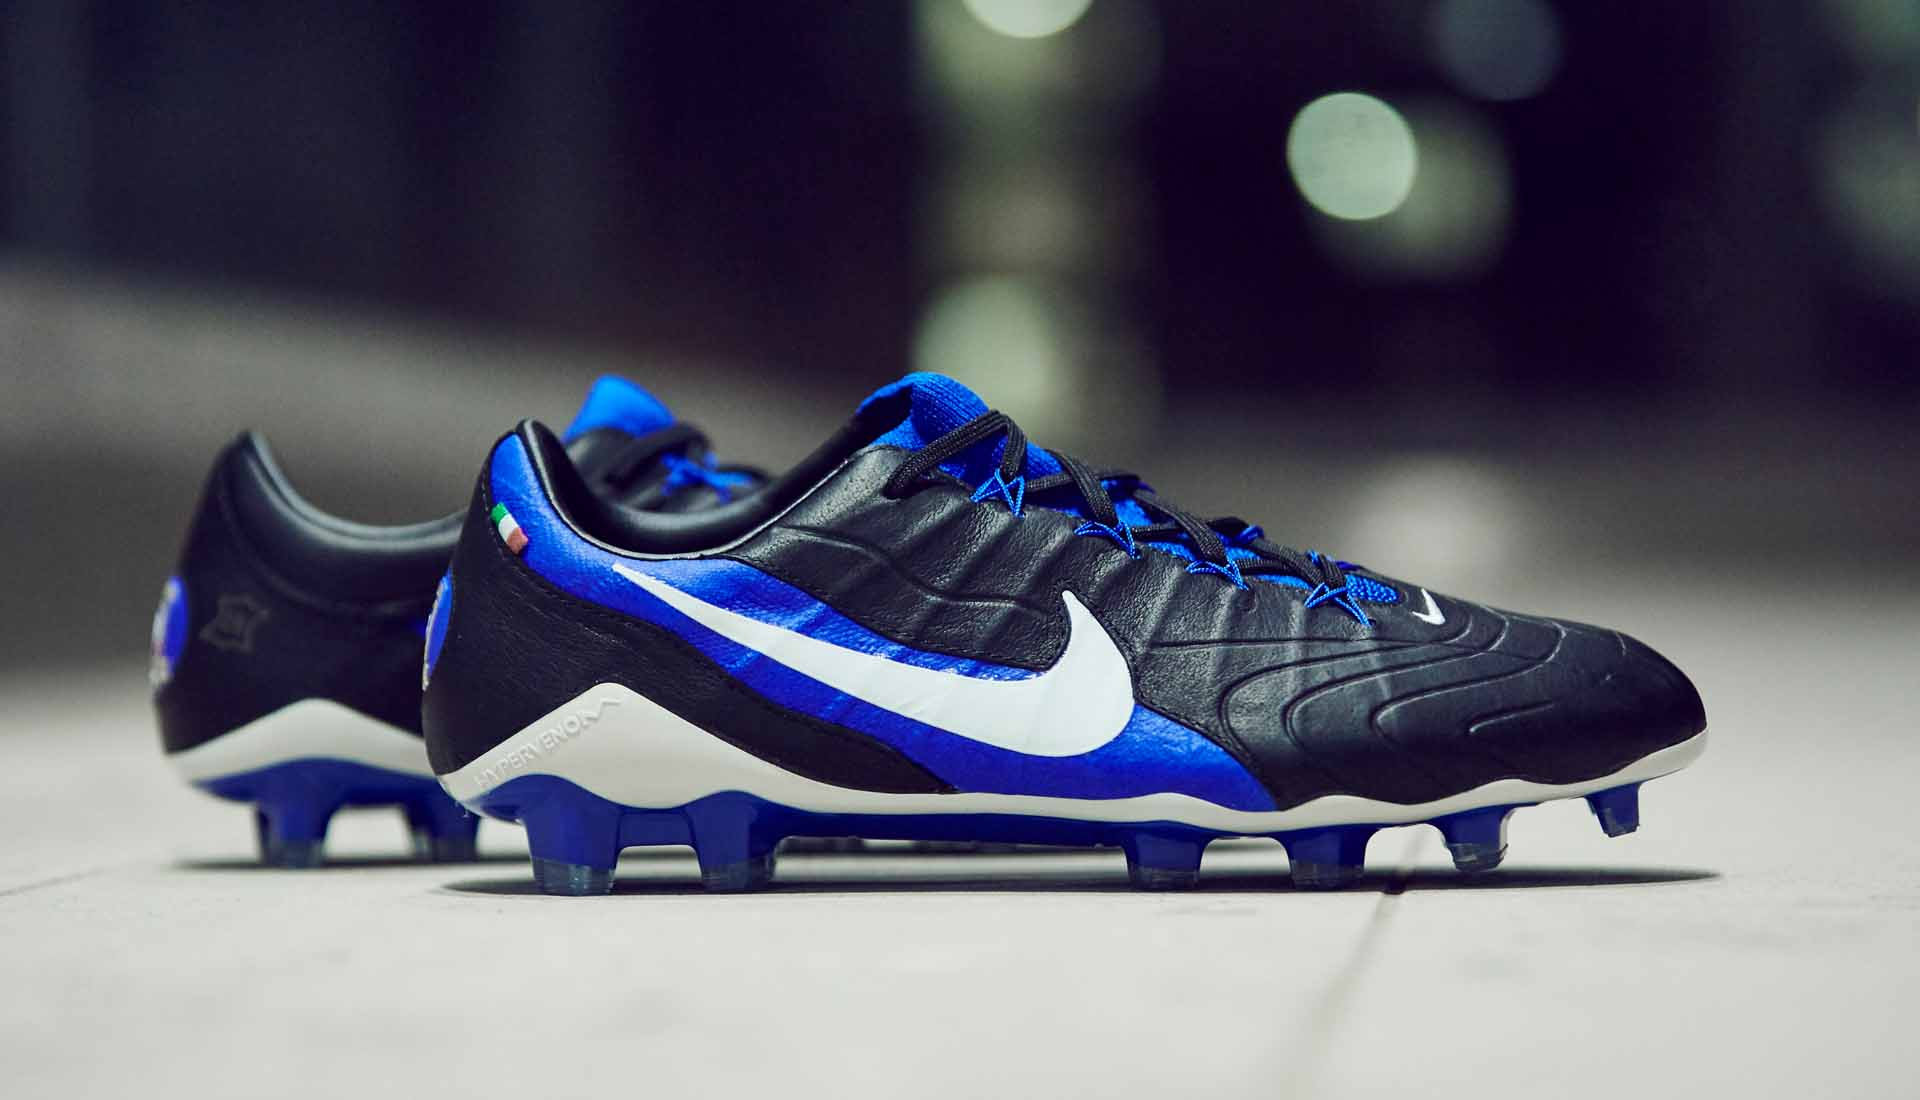 detailed look d9963 45c75 Nike Limited Edition Hypervenom GX Football Boots - SoccerBible